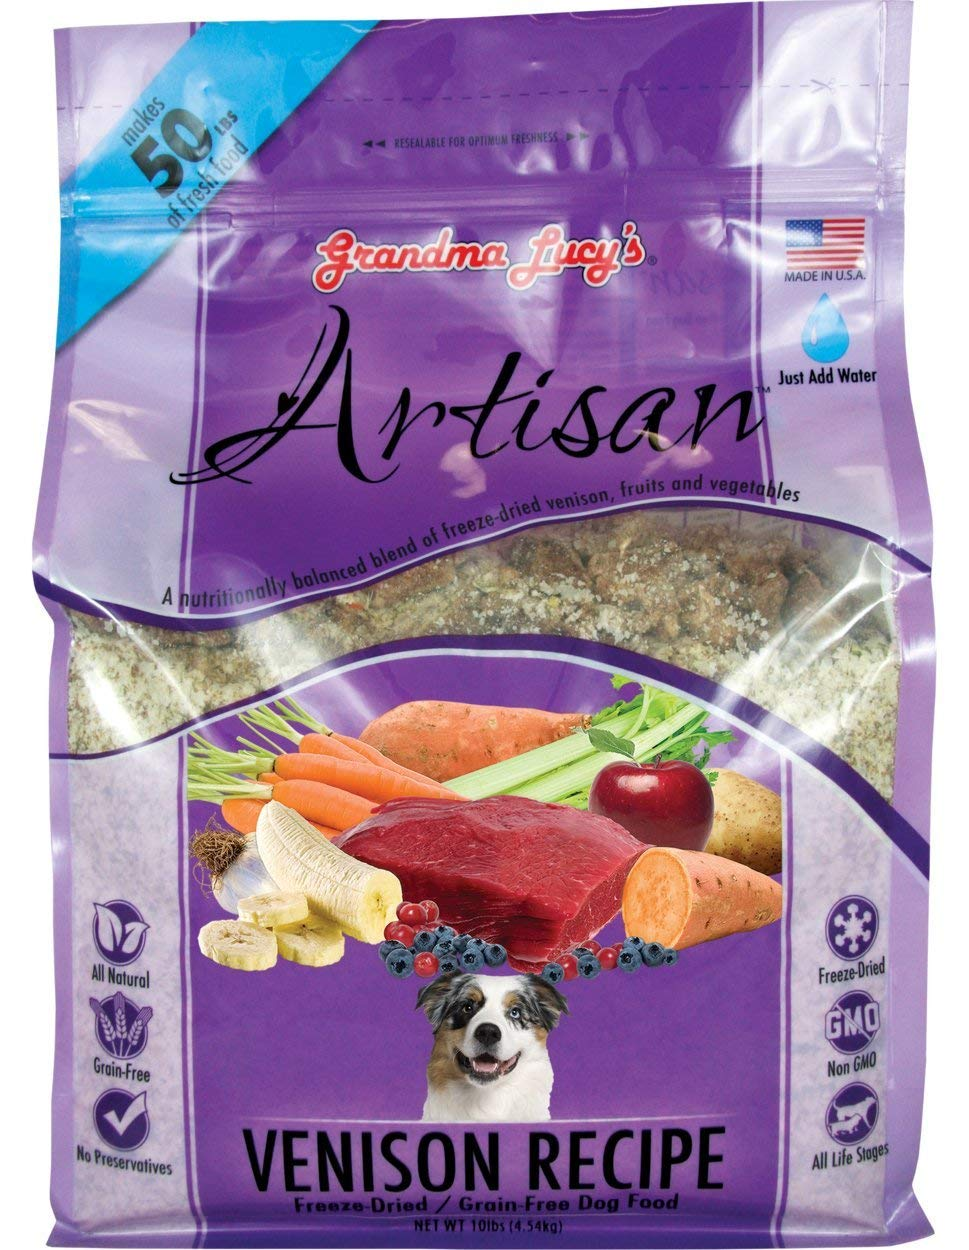 Grandma Lucy's Grain Free Venison Freeze Dried Dog Food. 3 LB. Bag. Made with Venison, Fruits & Vegetables